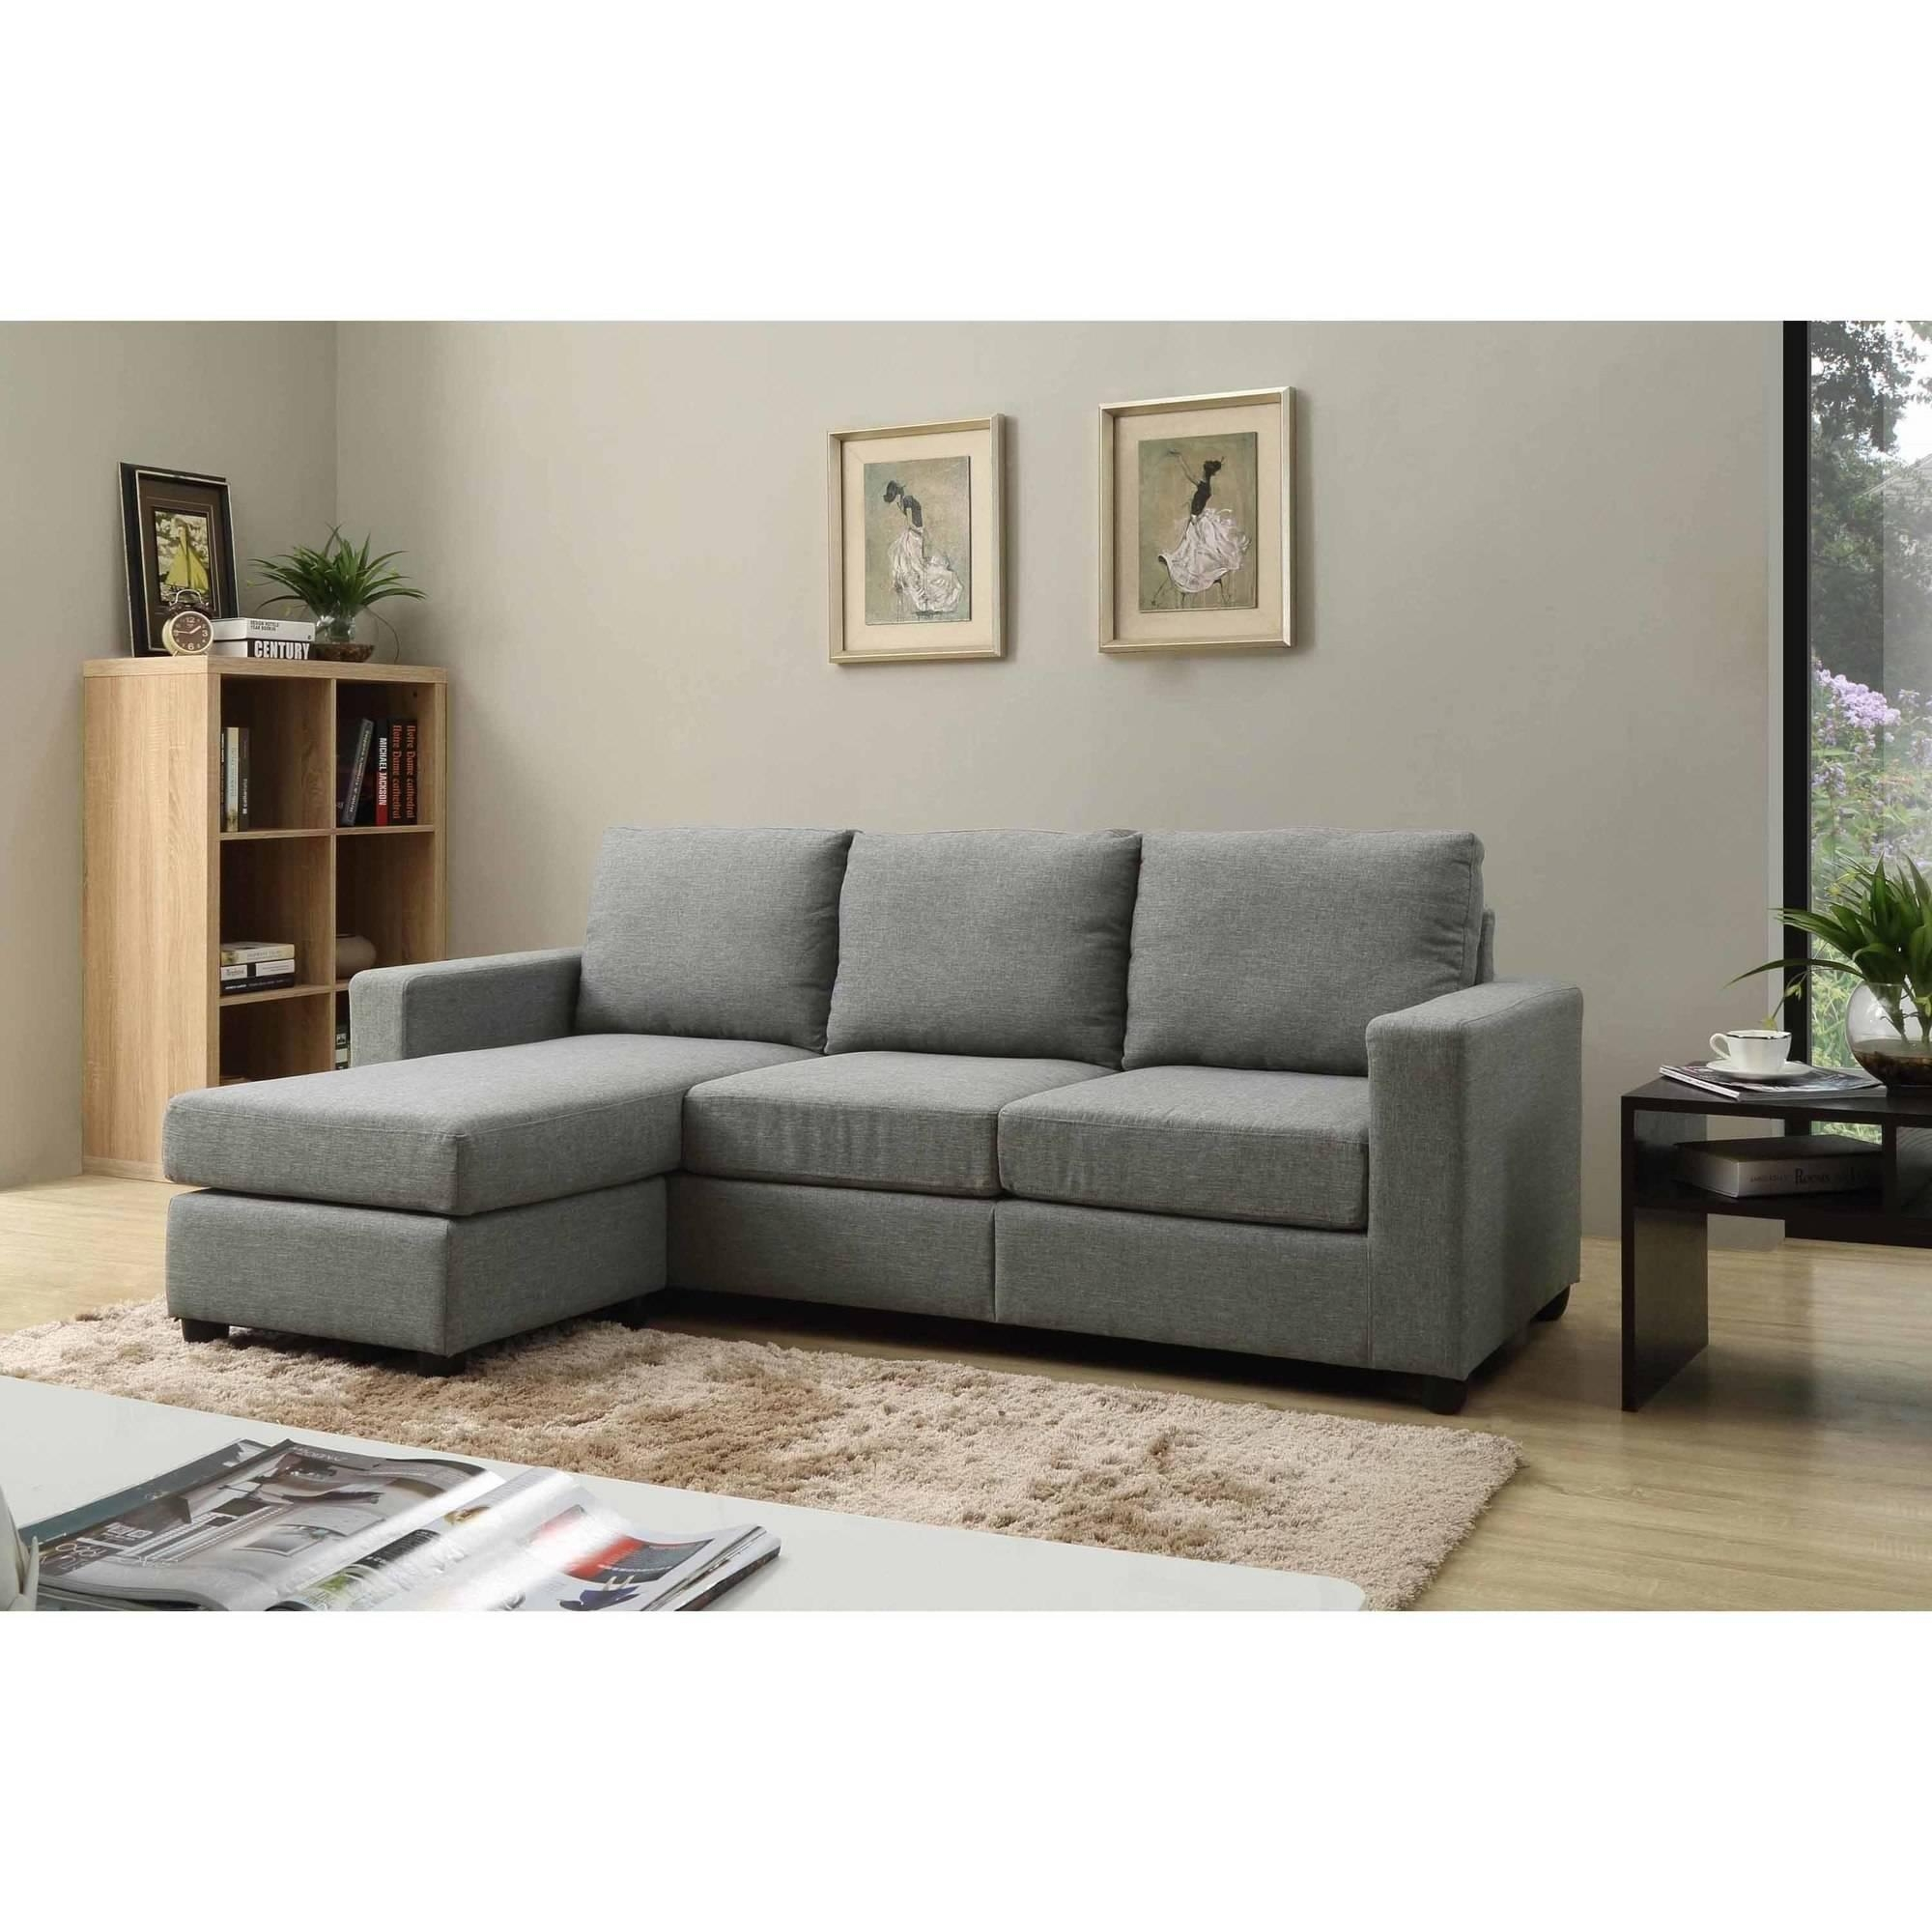 Nathaniel Home Alexandra Small Space Convertible Sectional Regarding Convertible Sectional Sofas (Image 10 of 15)